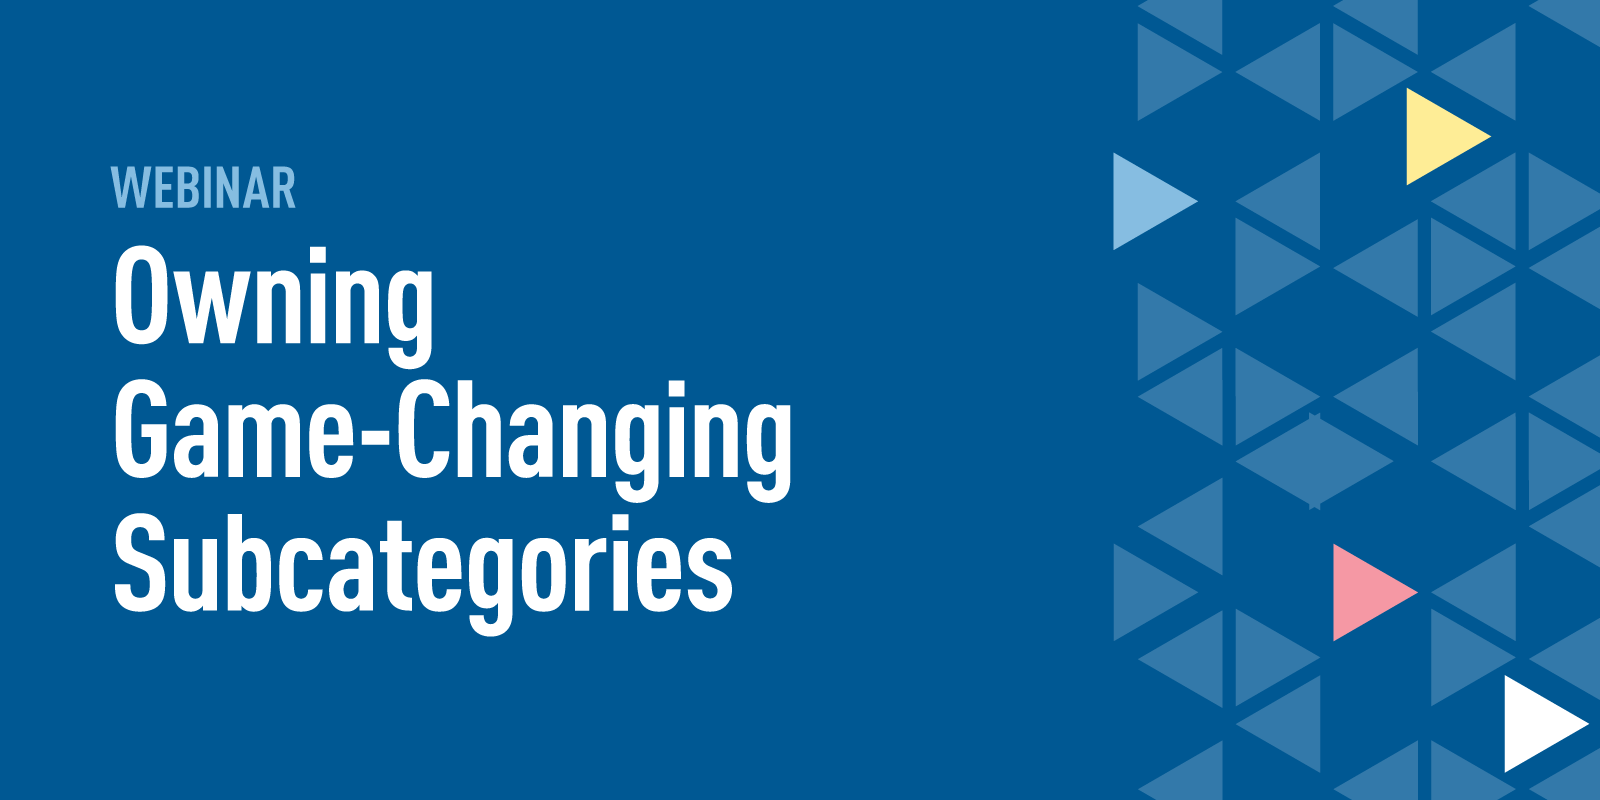 Webinar: Owning Game-Changing Subcategories